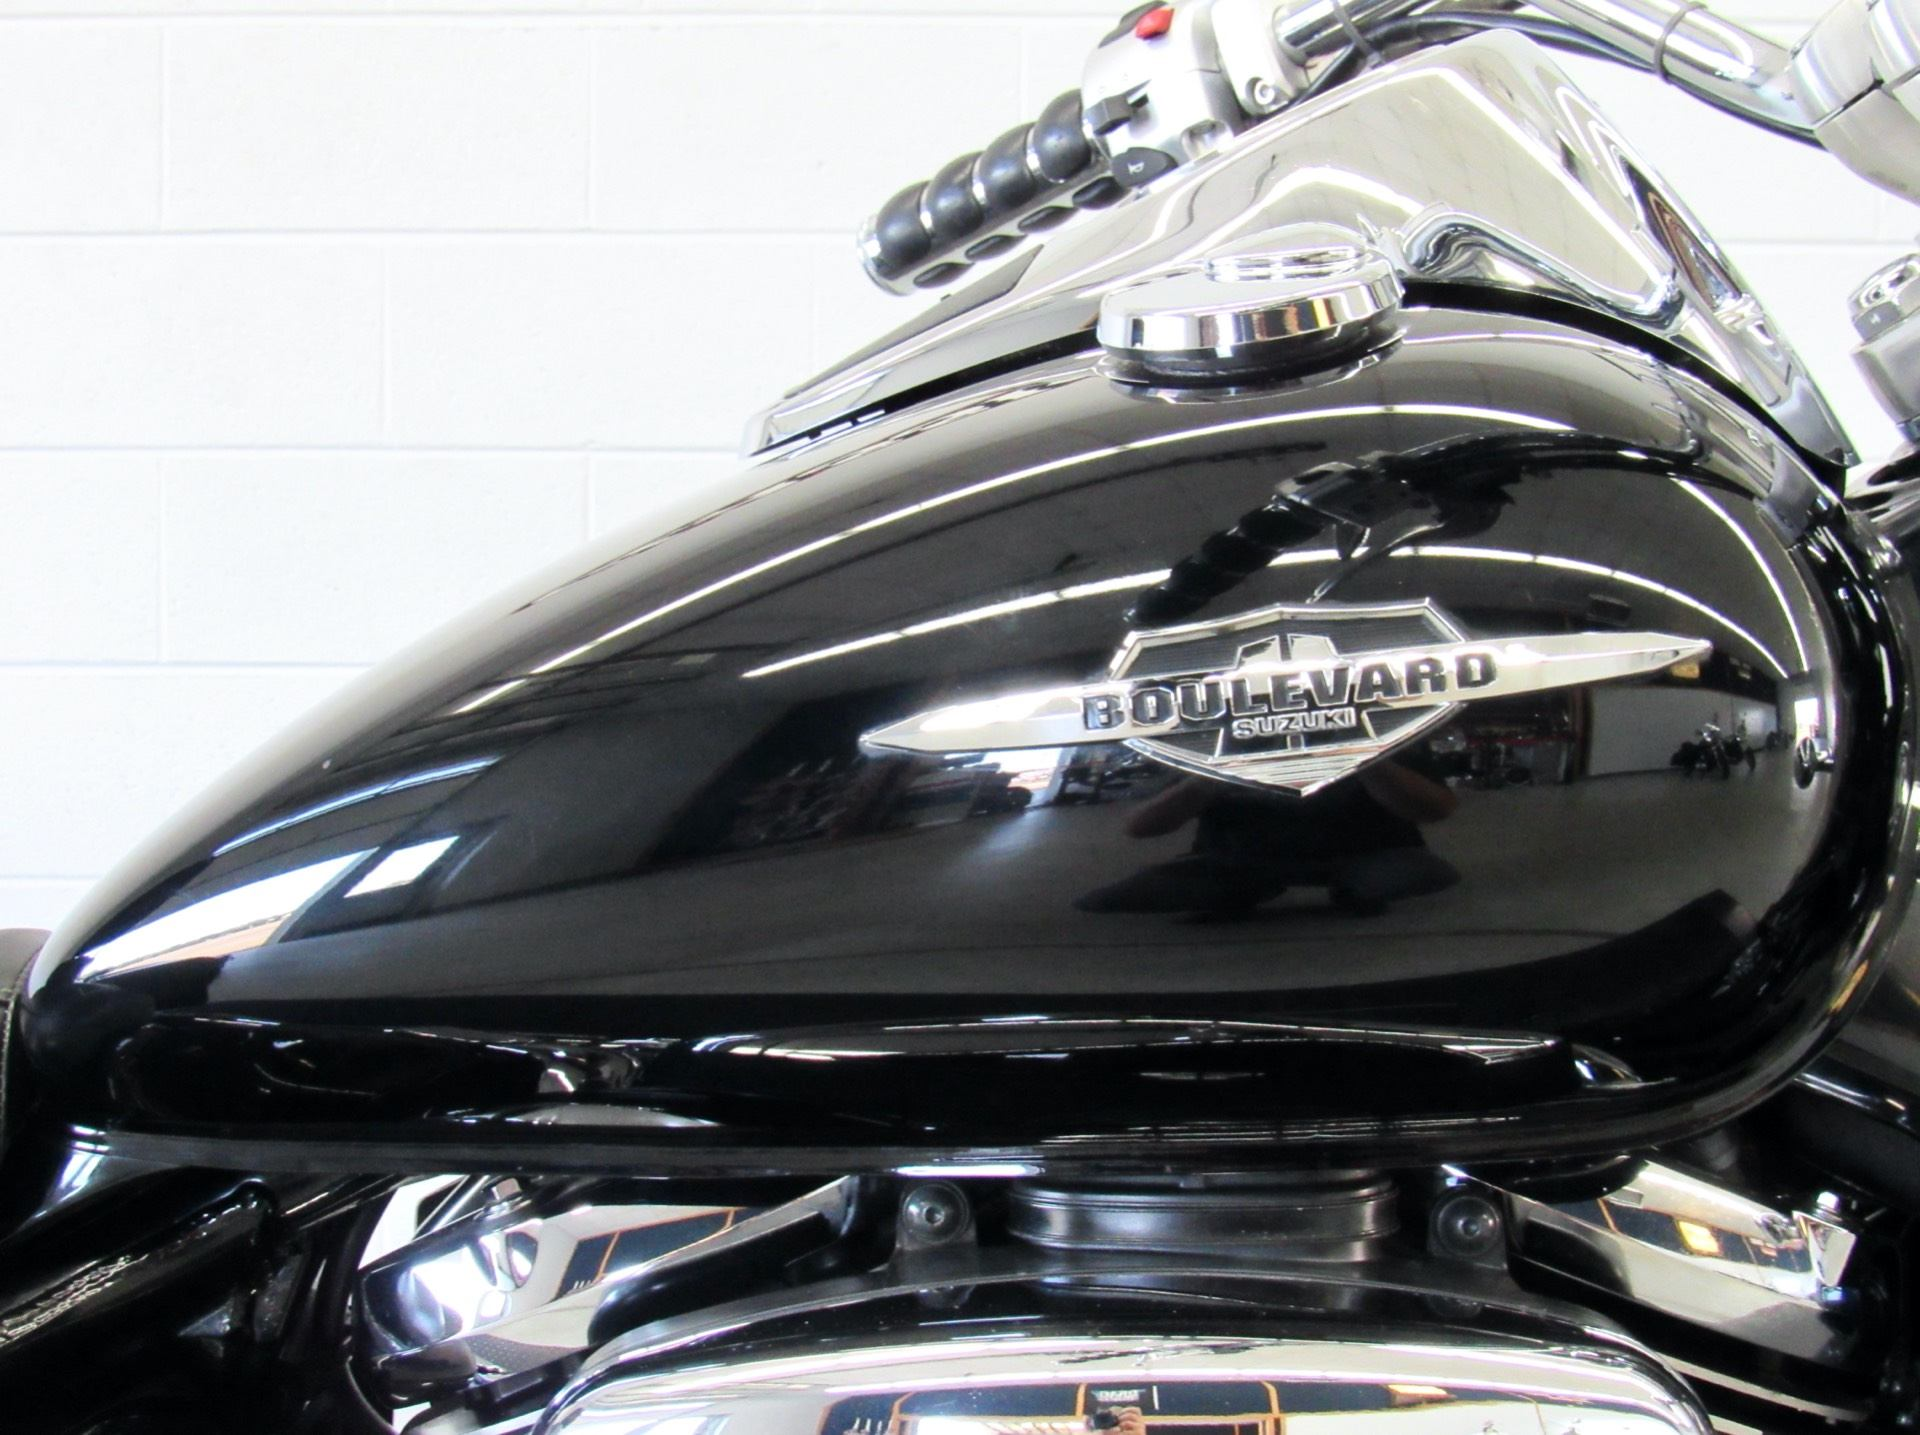 2008 Suzuki Boulevard C50 Black in Fredericksburg, Virginia - Photo 13